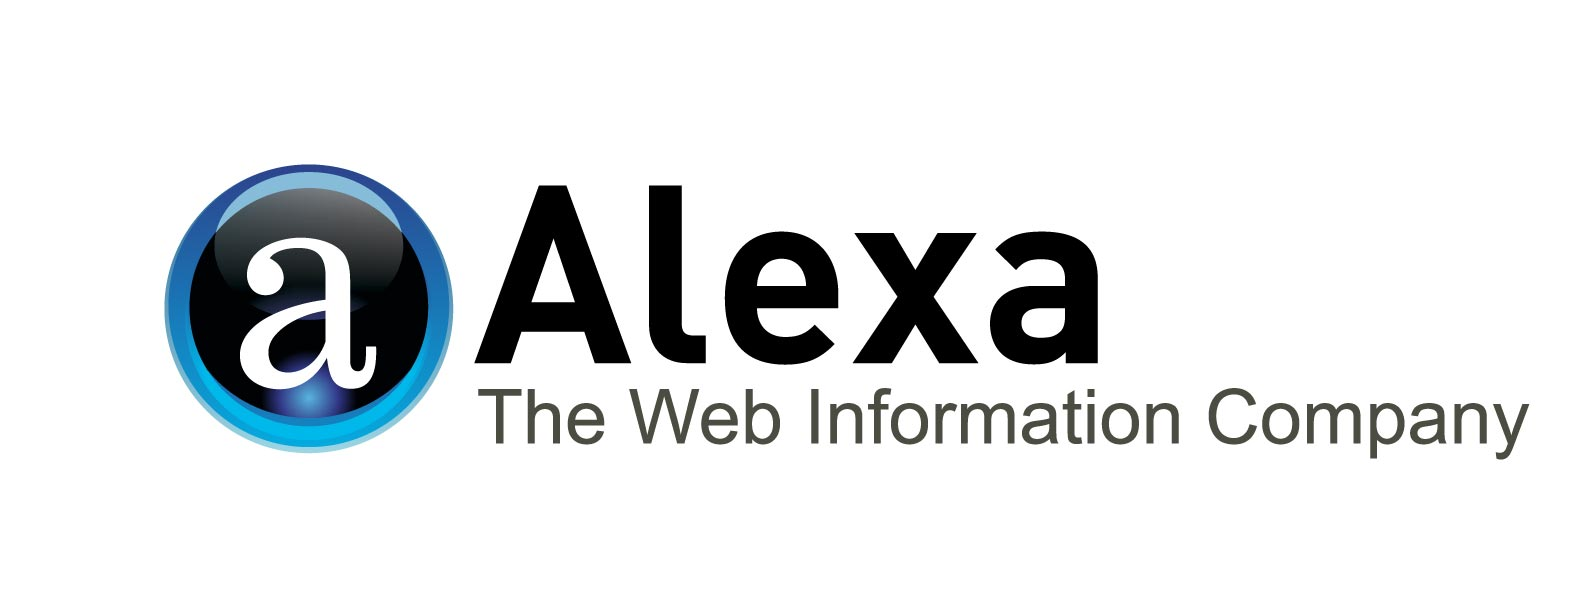 Other Sites like Alexa to eval...